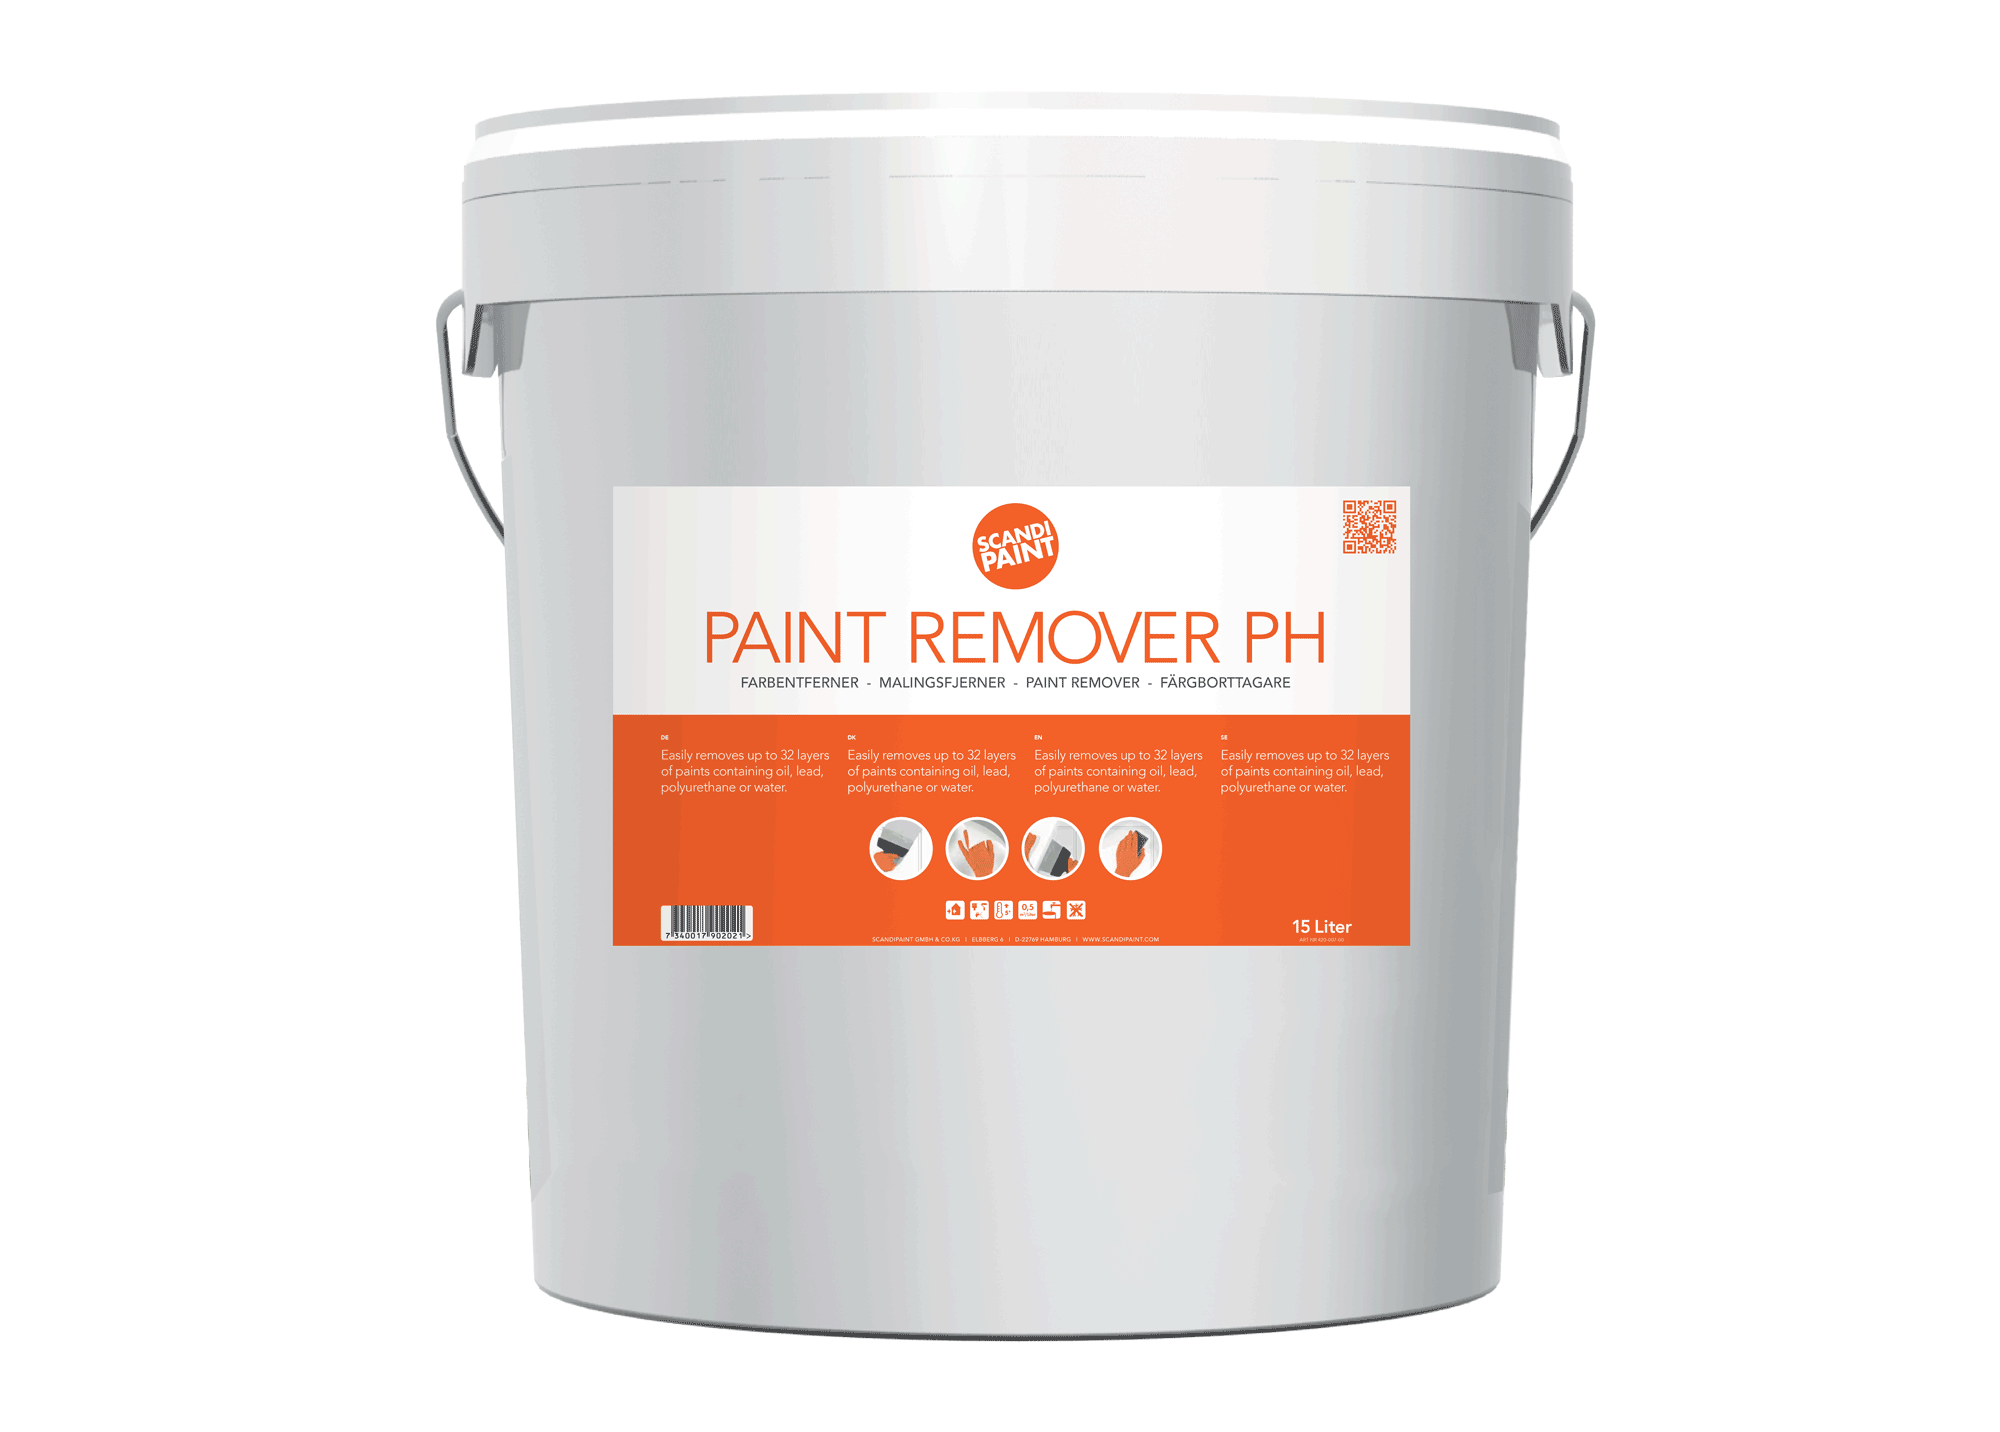 SP-Paint-Remover-PH.png